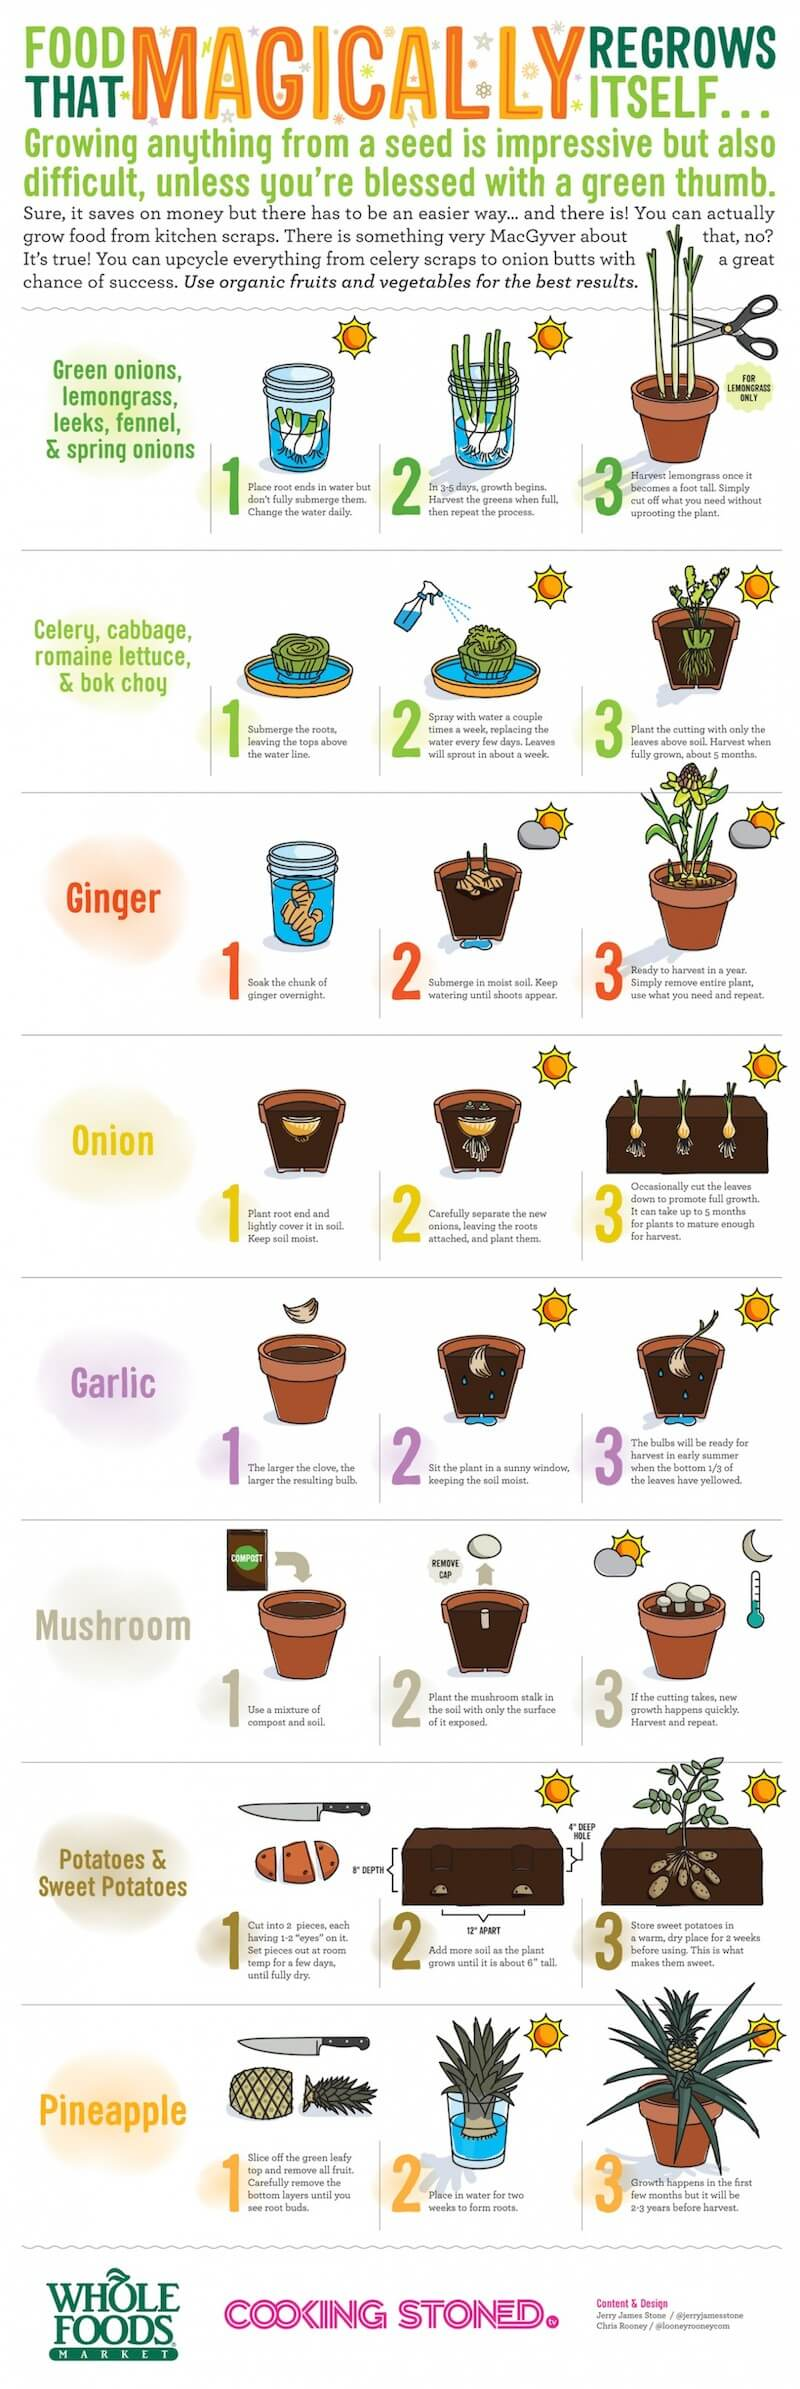 12 Foods You Can ReGrow Yourself from Kitchen Scraps – Regrow vegetables